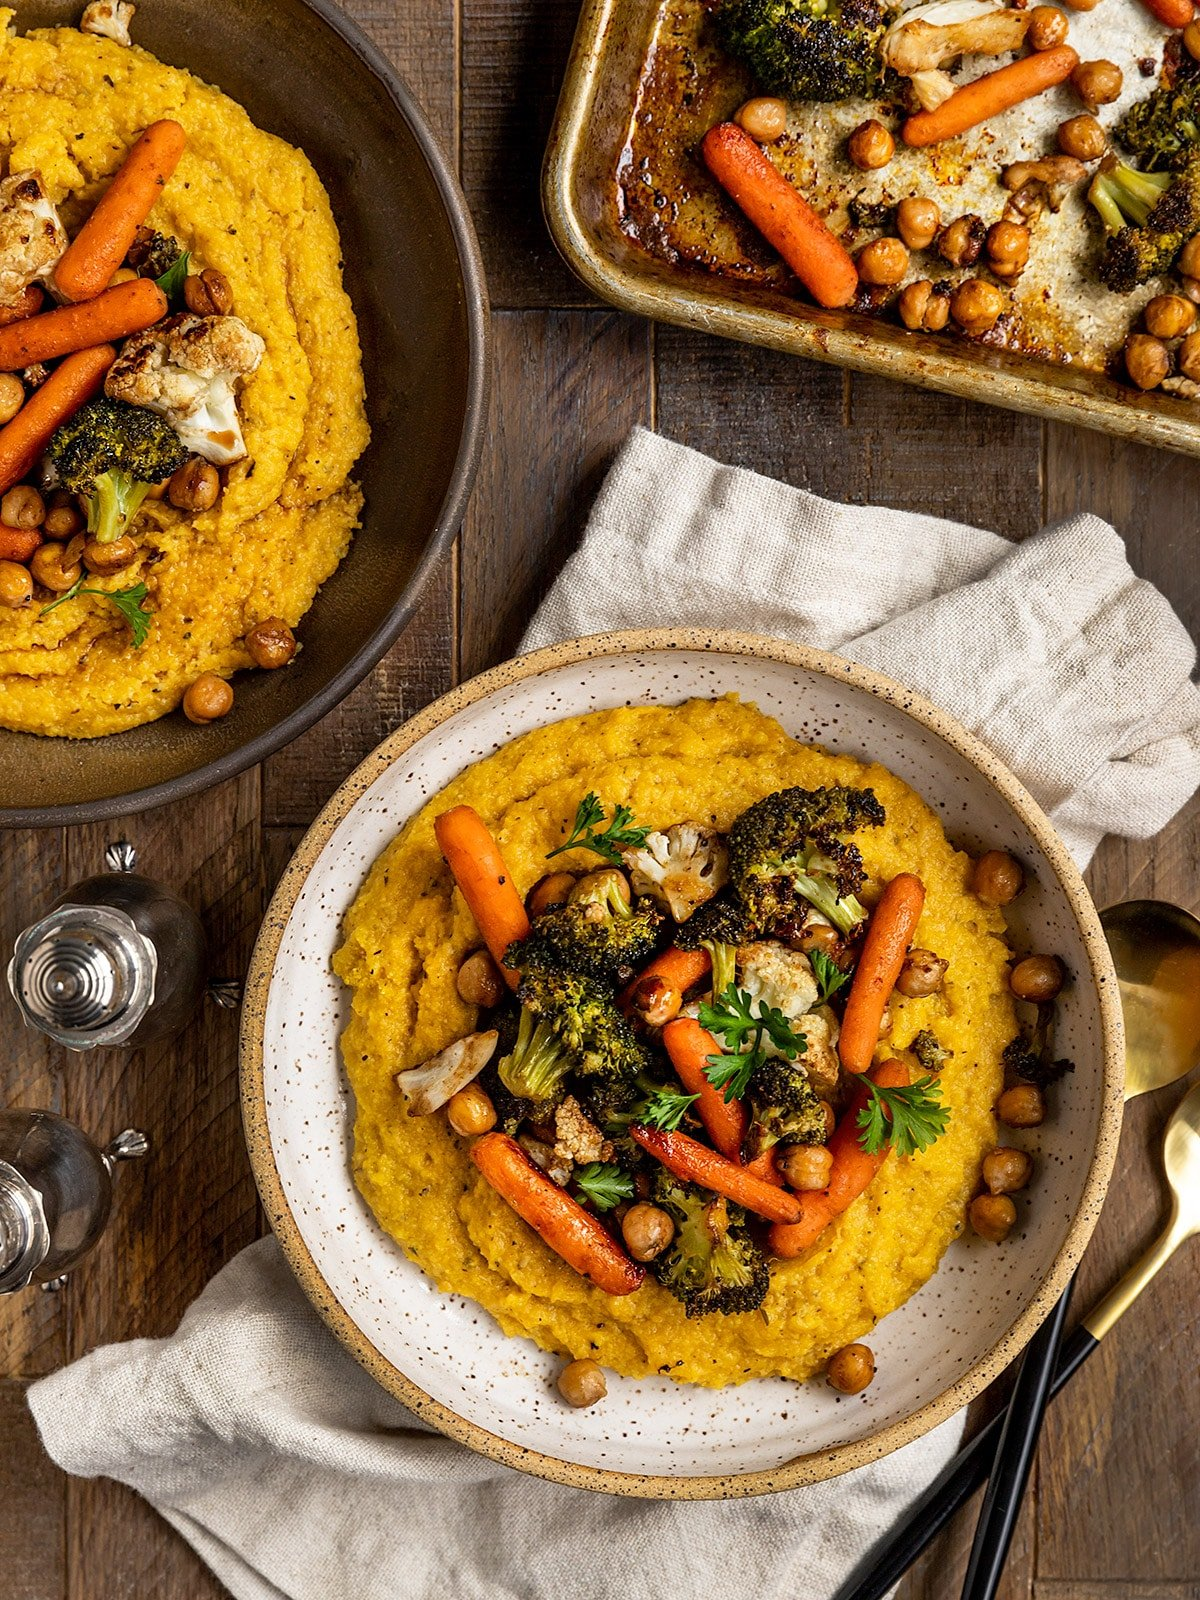 two bowls of polenta with roasted veggies on top and a tray of roasted veggies on the side